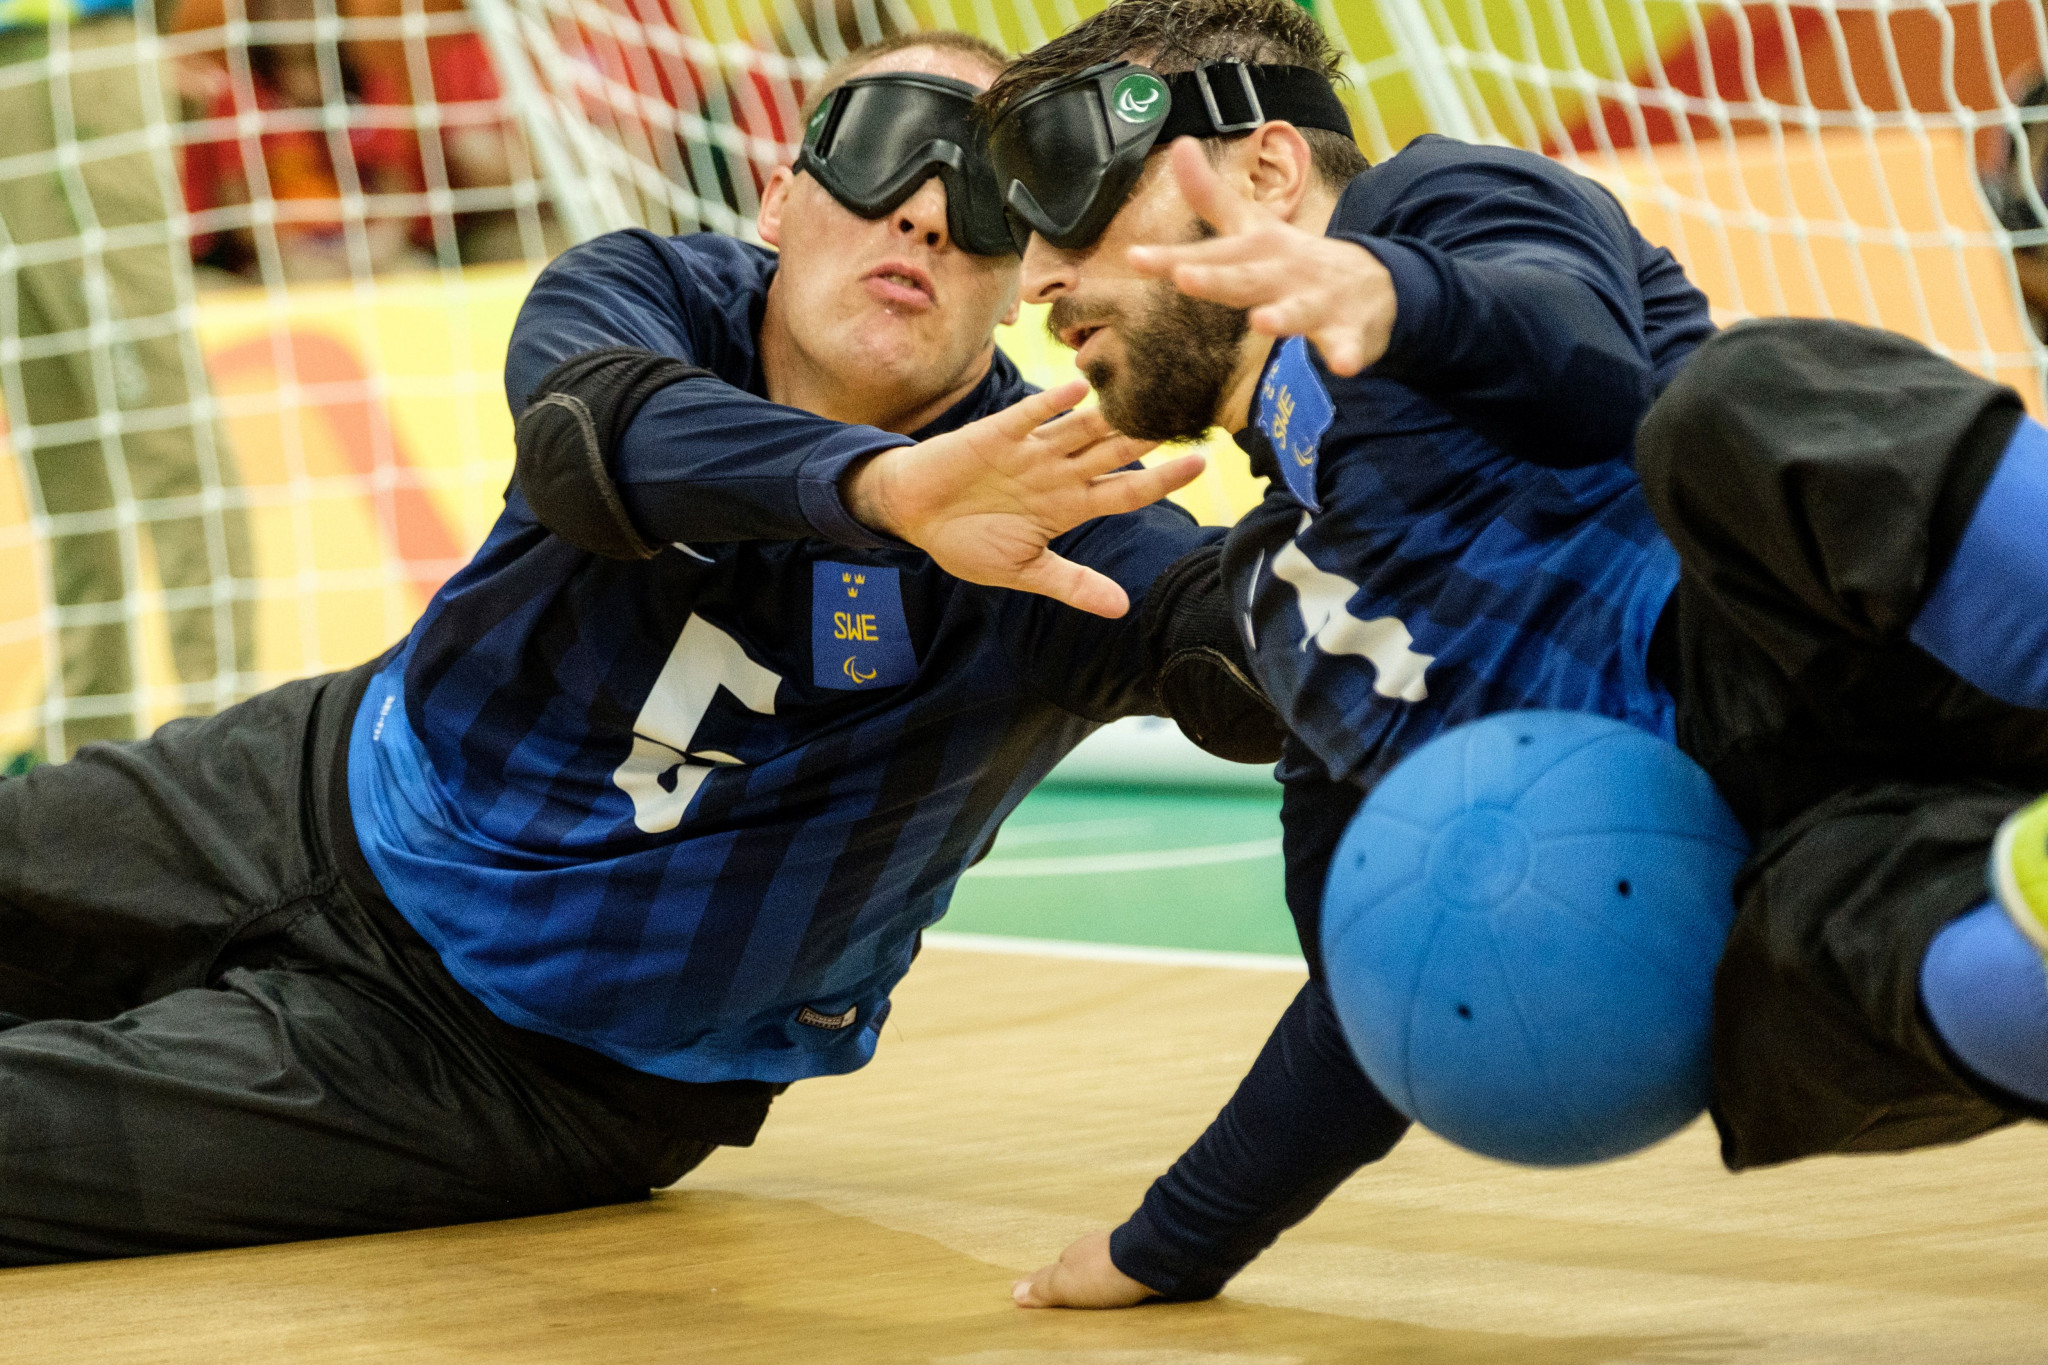 Goalball line-up remains unchanged for postponed Tokyo 2020 Paralympics